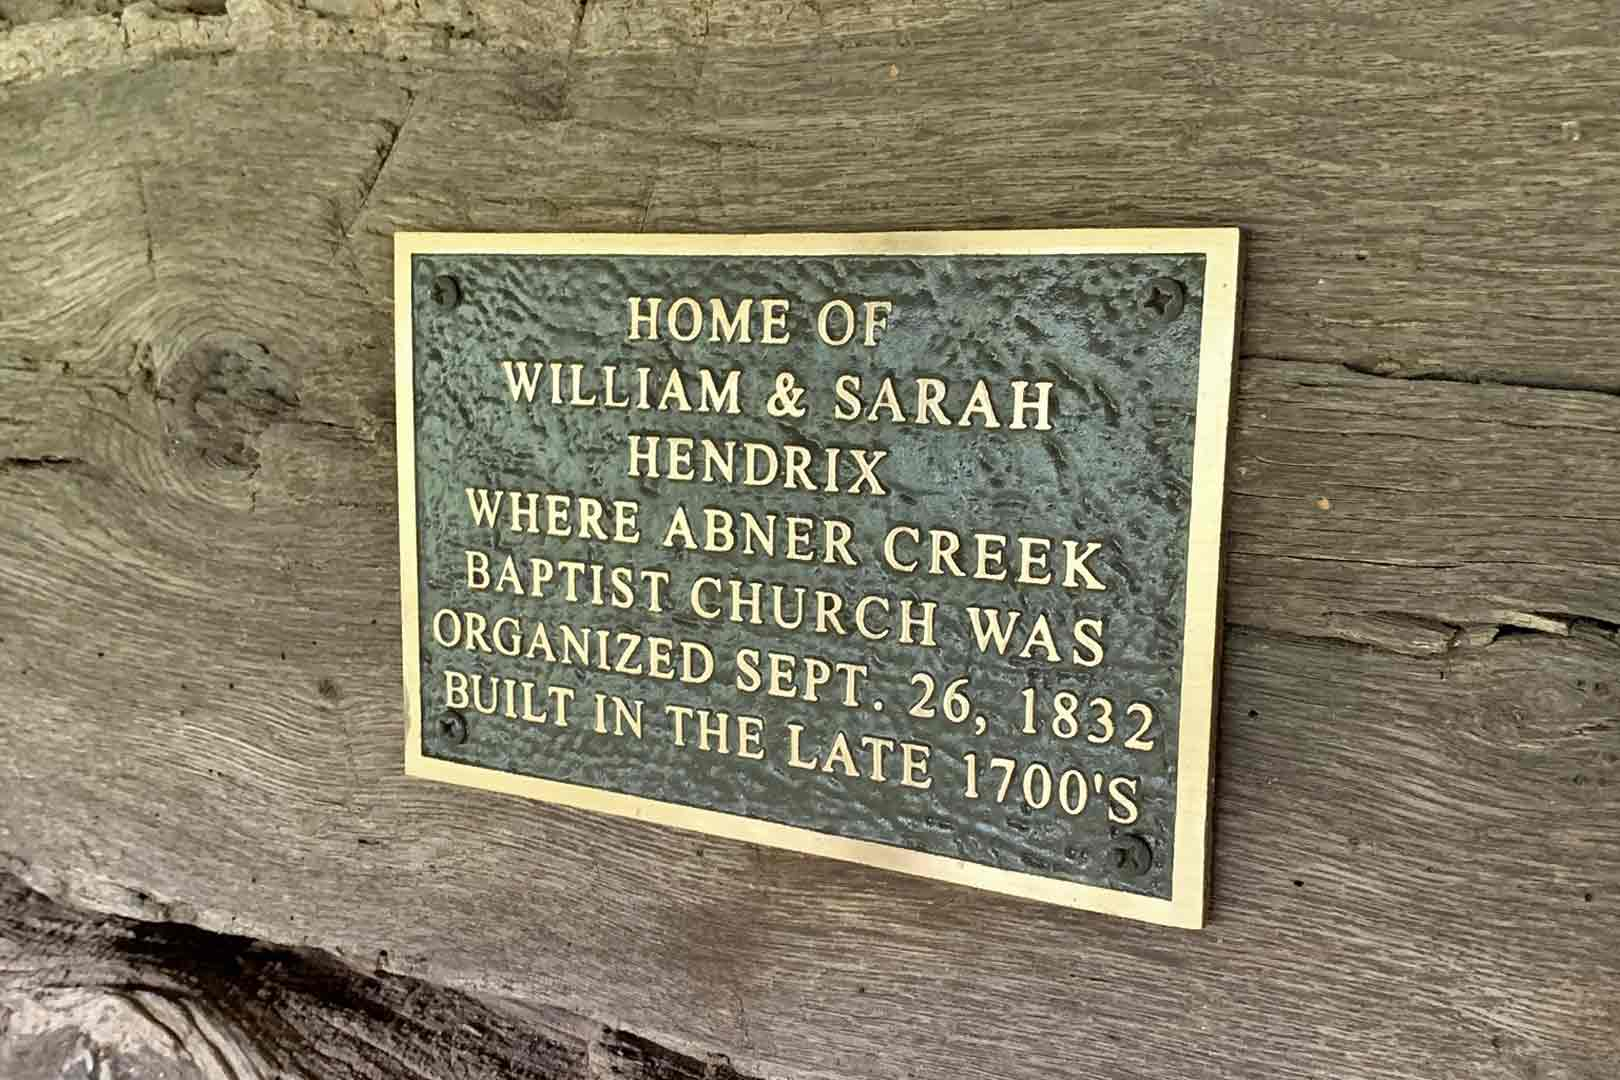 Home of William and Sarah Hendrix